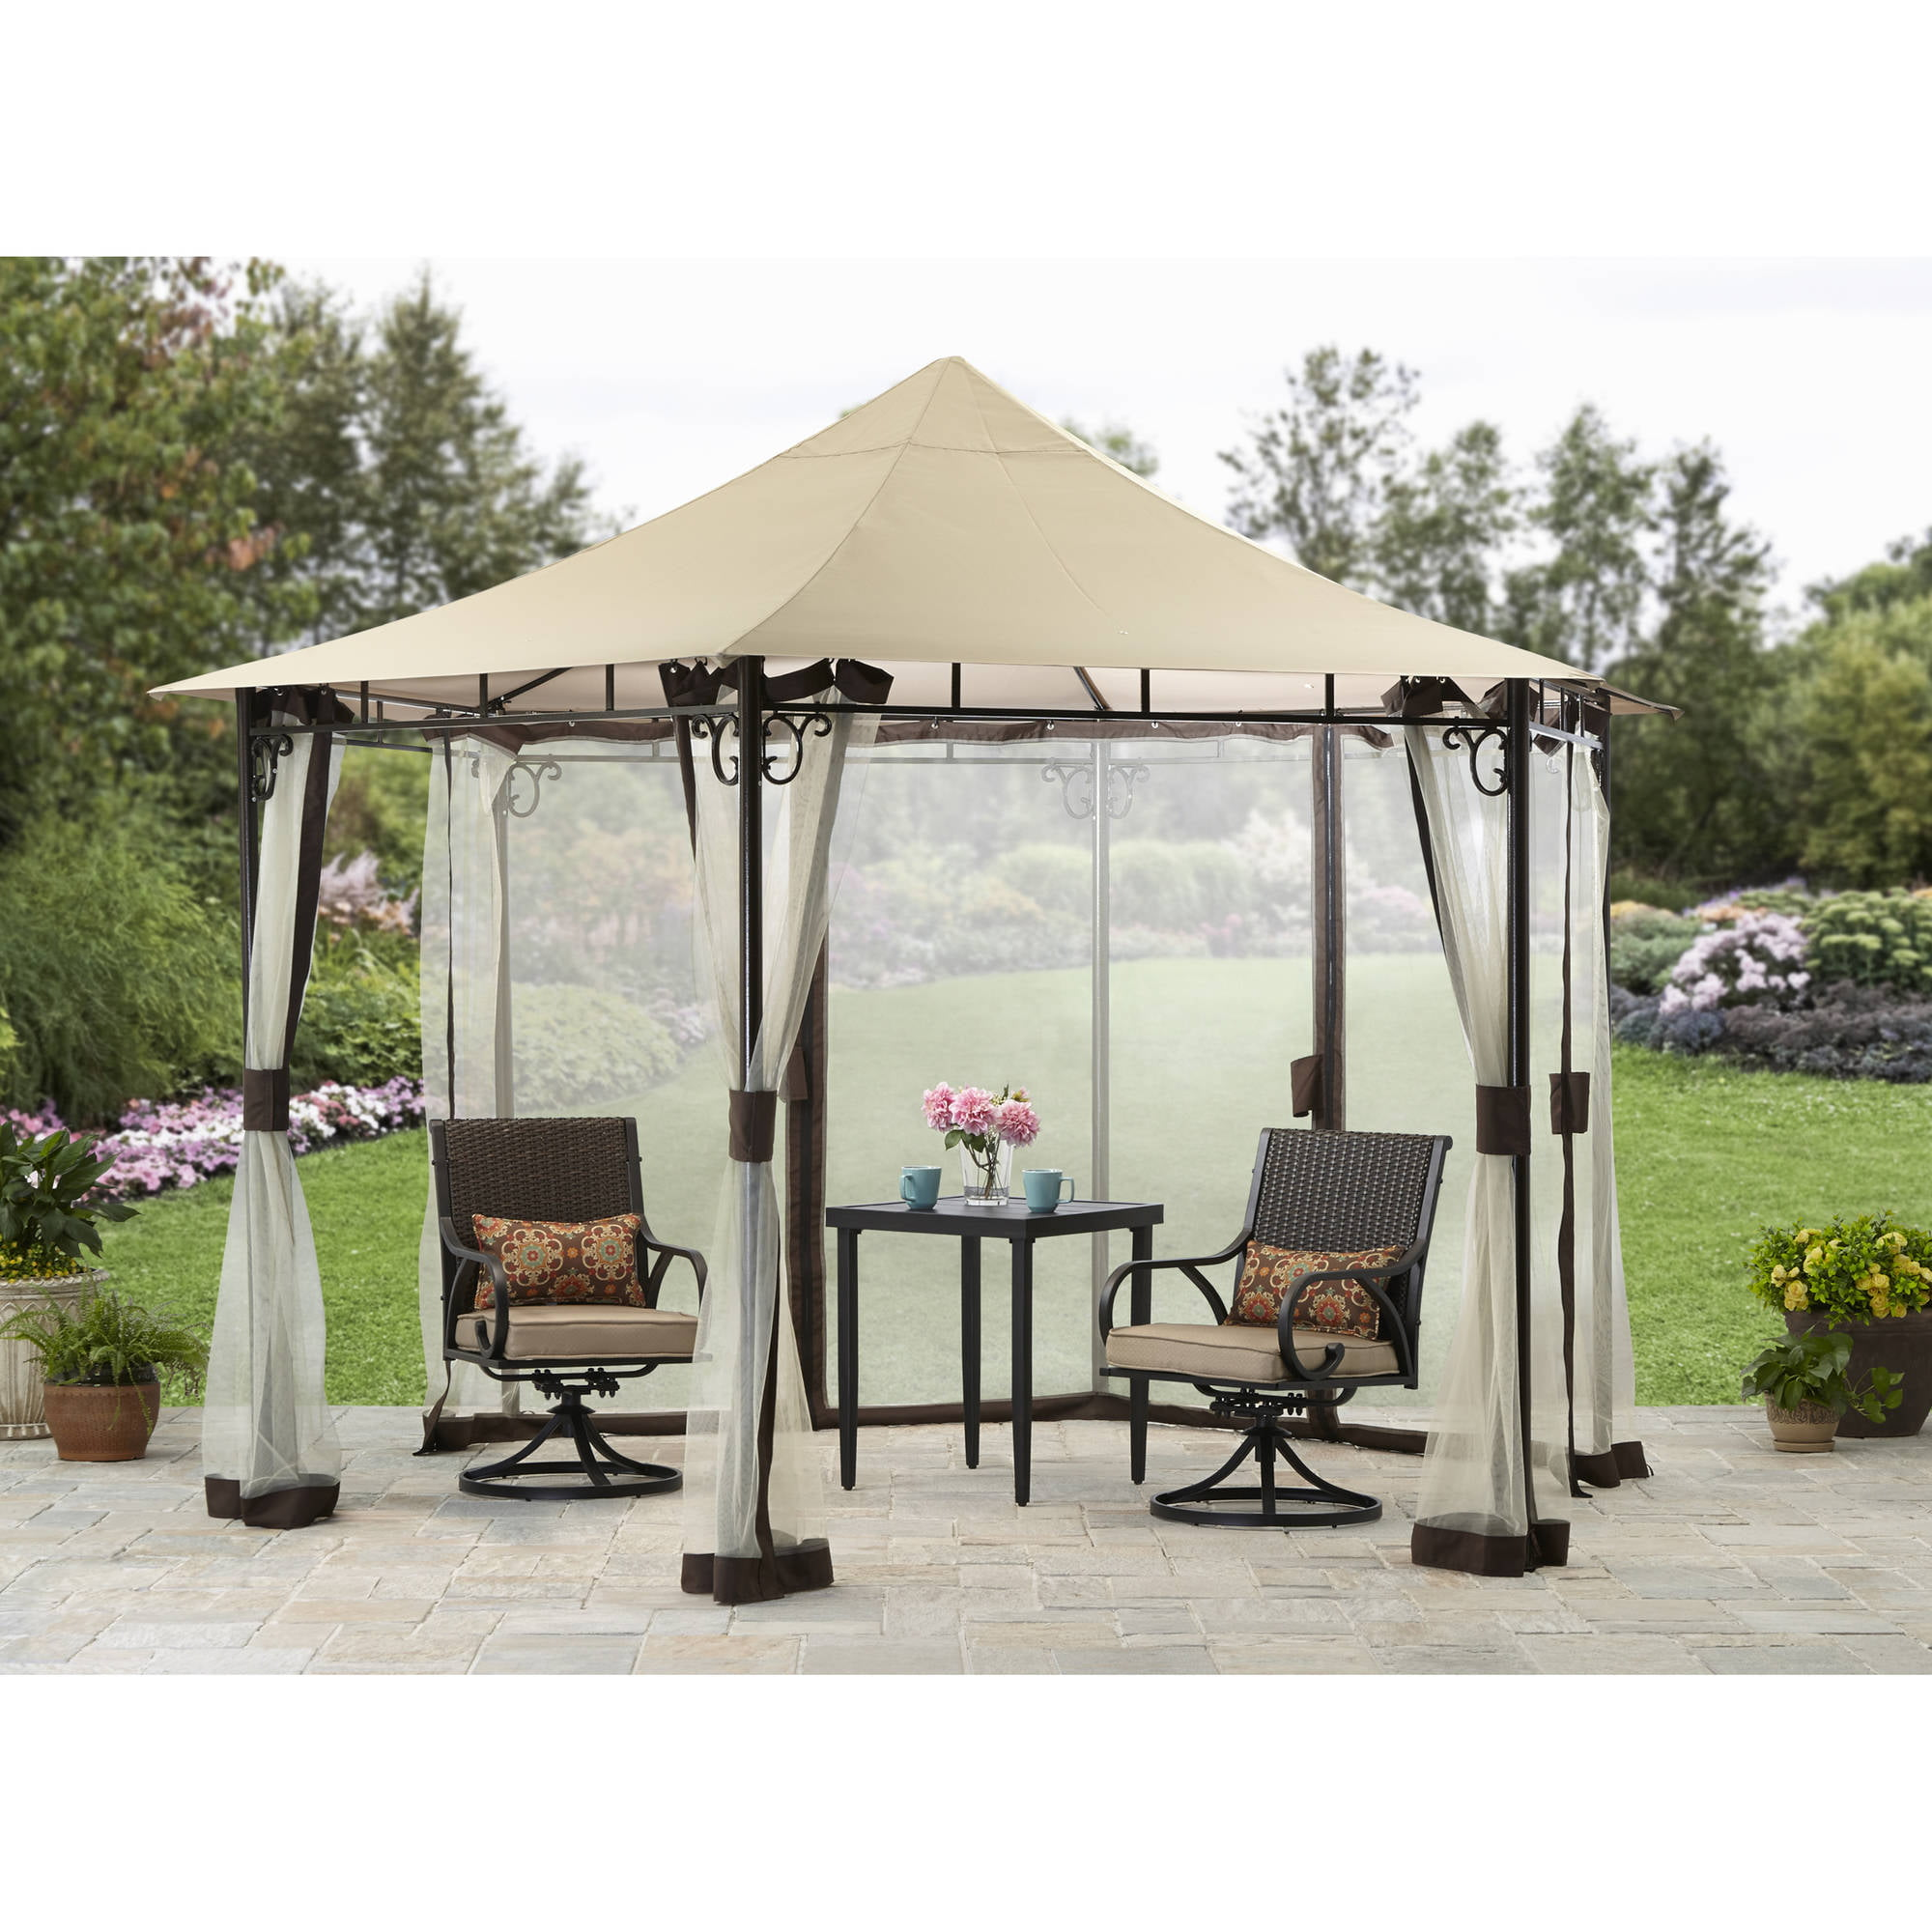 sc 1 st  Walmart & Better Homes and Gardens Ridge-Top Gazebo 13u0027 - Walmart.com